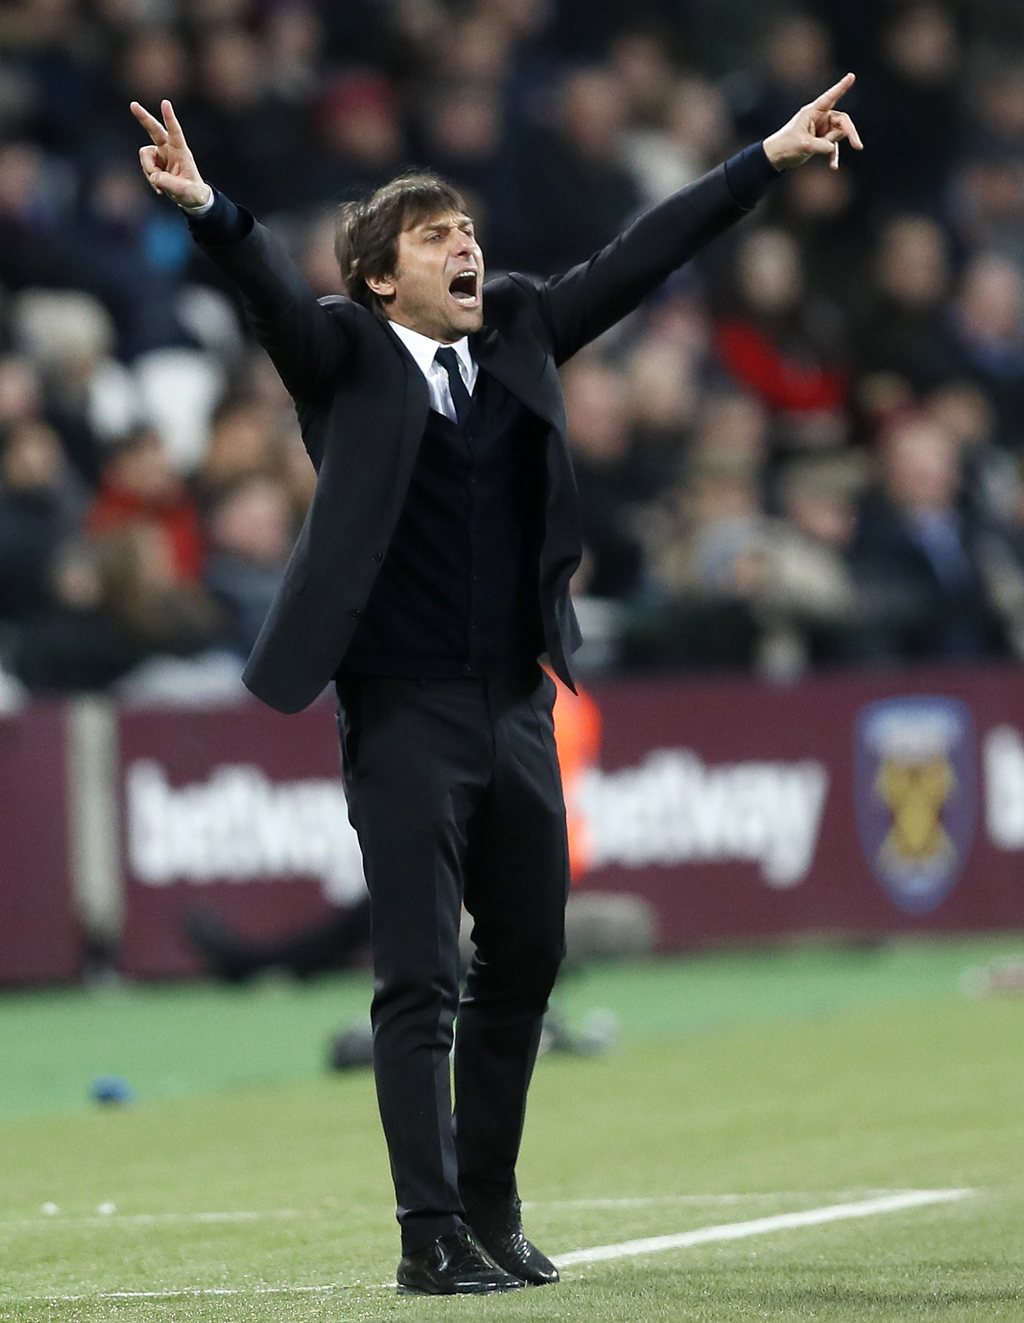 Chelsea manager Antonio Conte gestures during the English Premier League soccer match between West Ham and Chelsea at London Stadium, M...